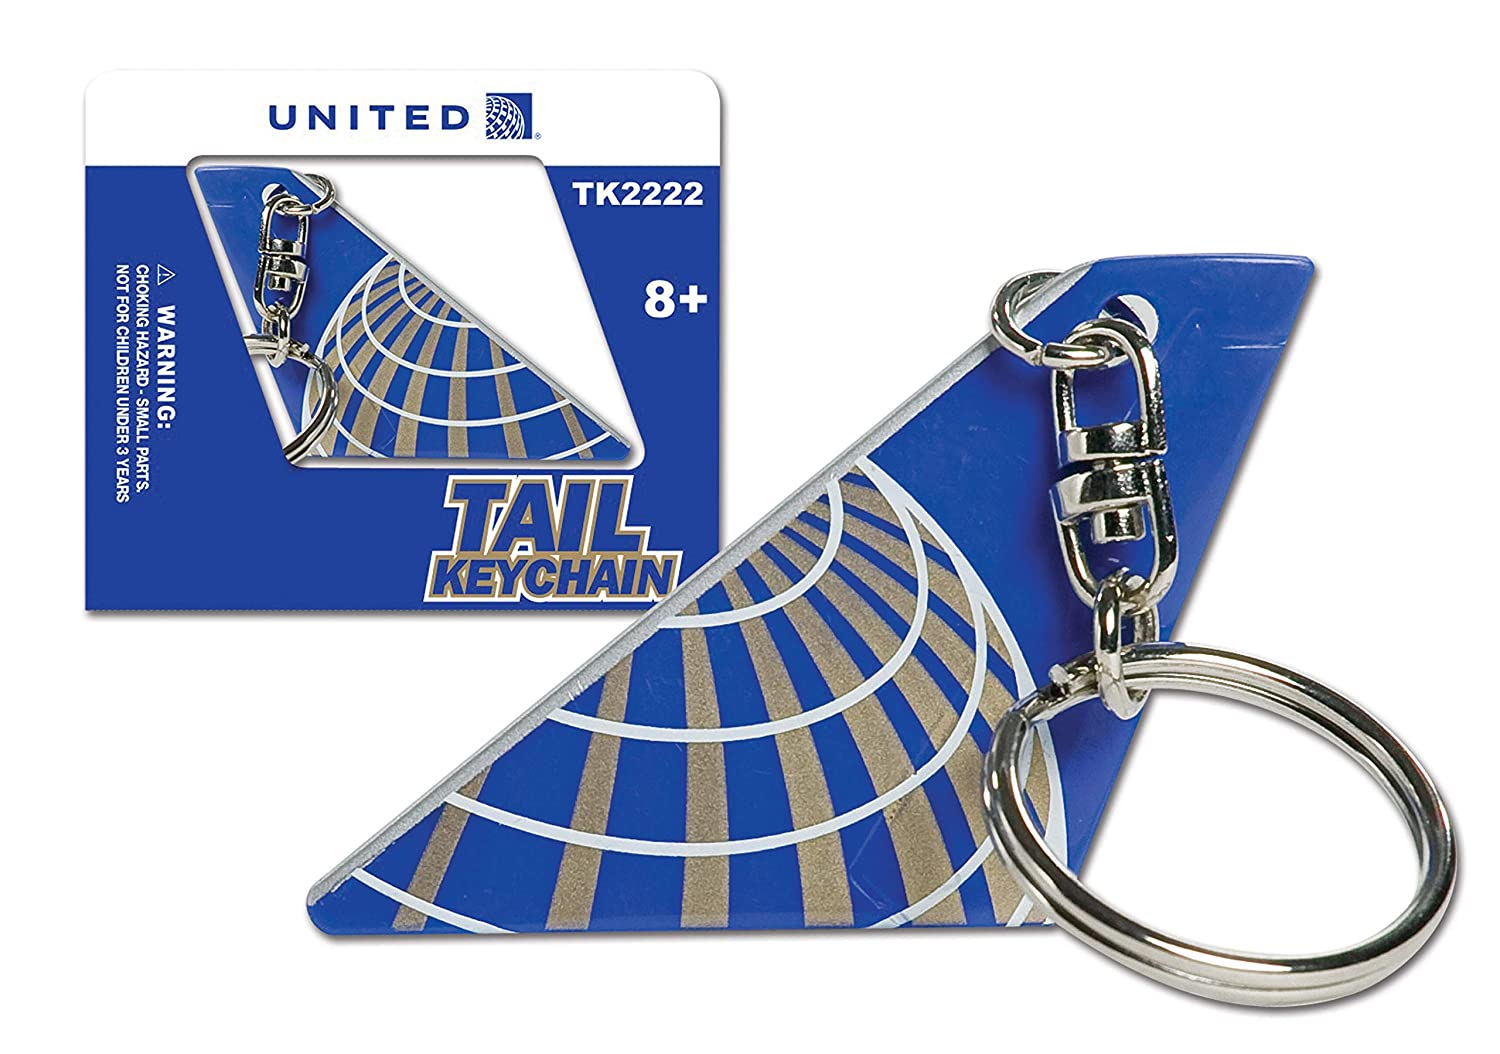 United Airlines Tail Keychain Daron UNITEDKEY030811